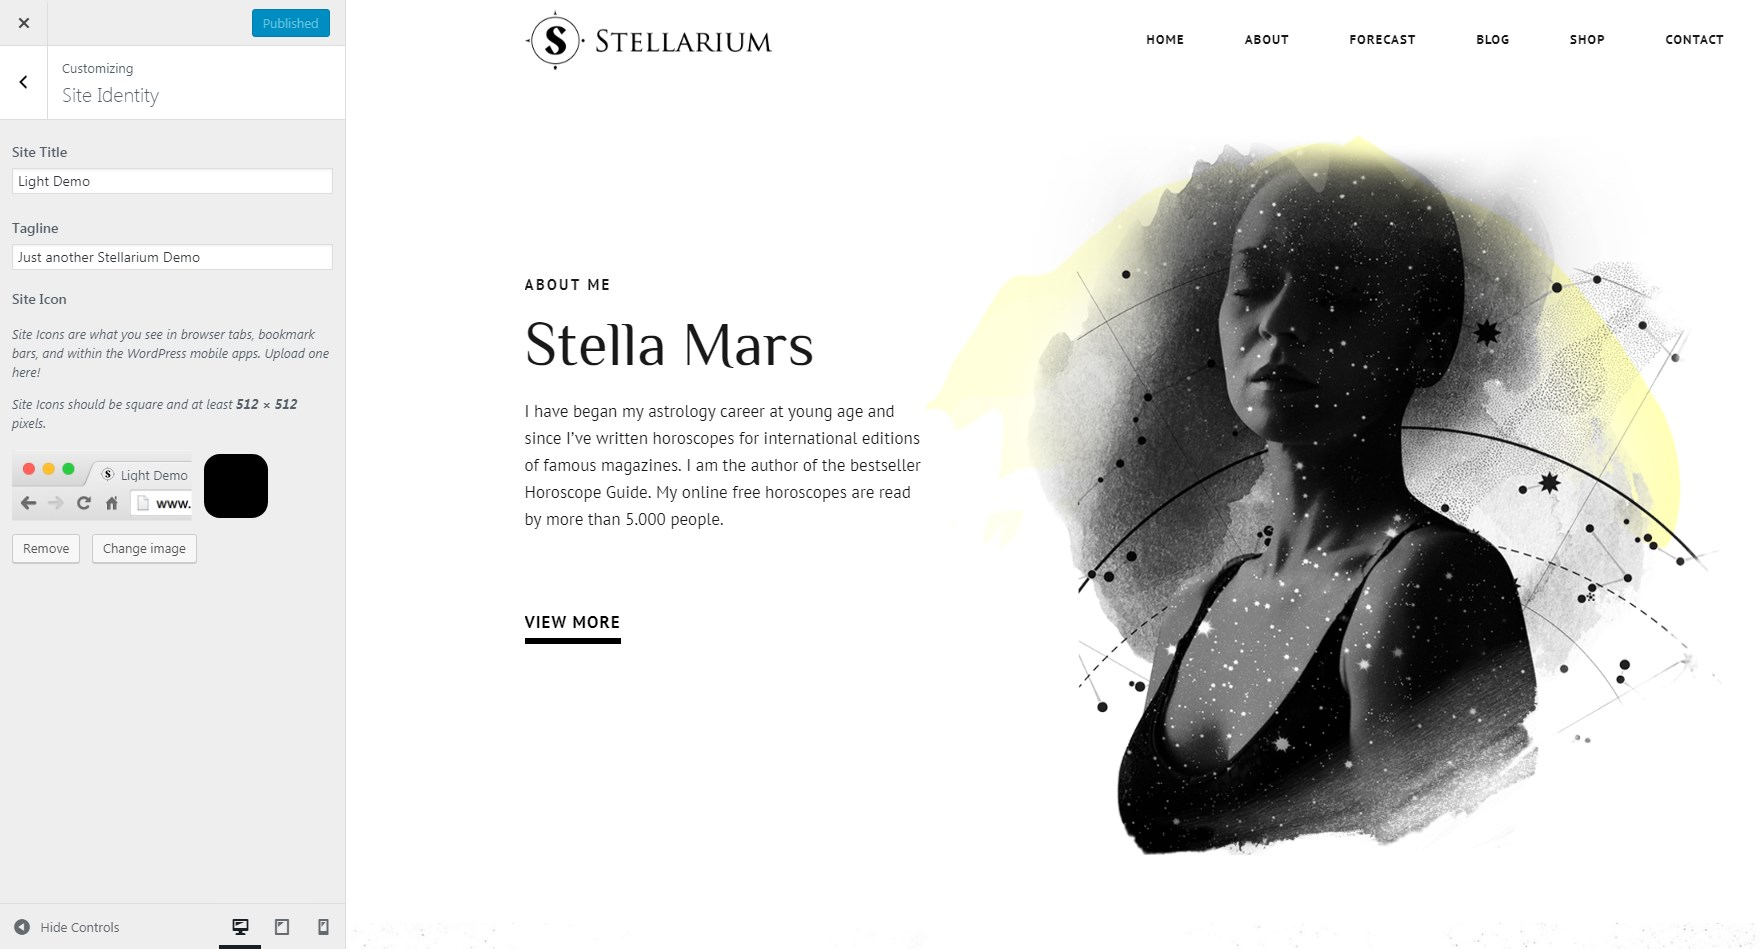 http://documentation.bold-themes.com/stellarium/wp-content/uploads/sites/34/2018/06/stellarium-customize-04.jpg